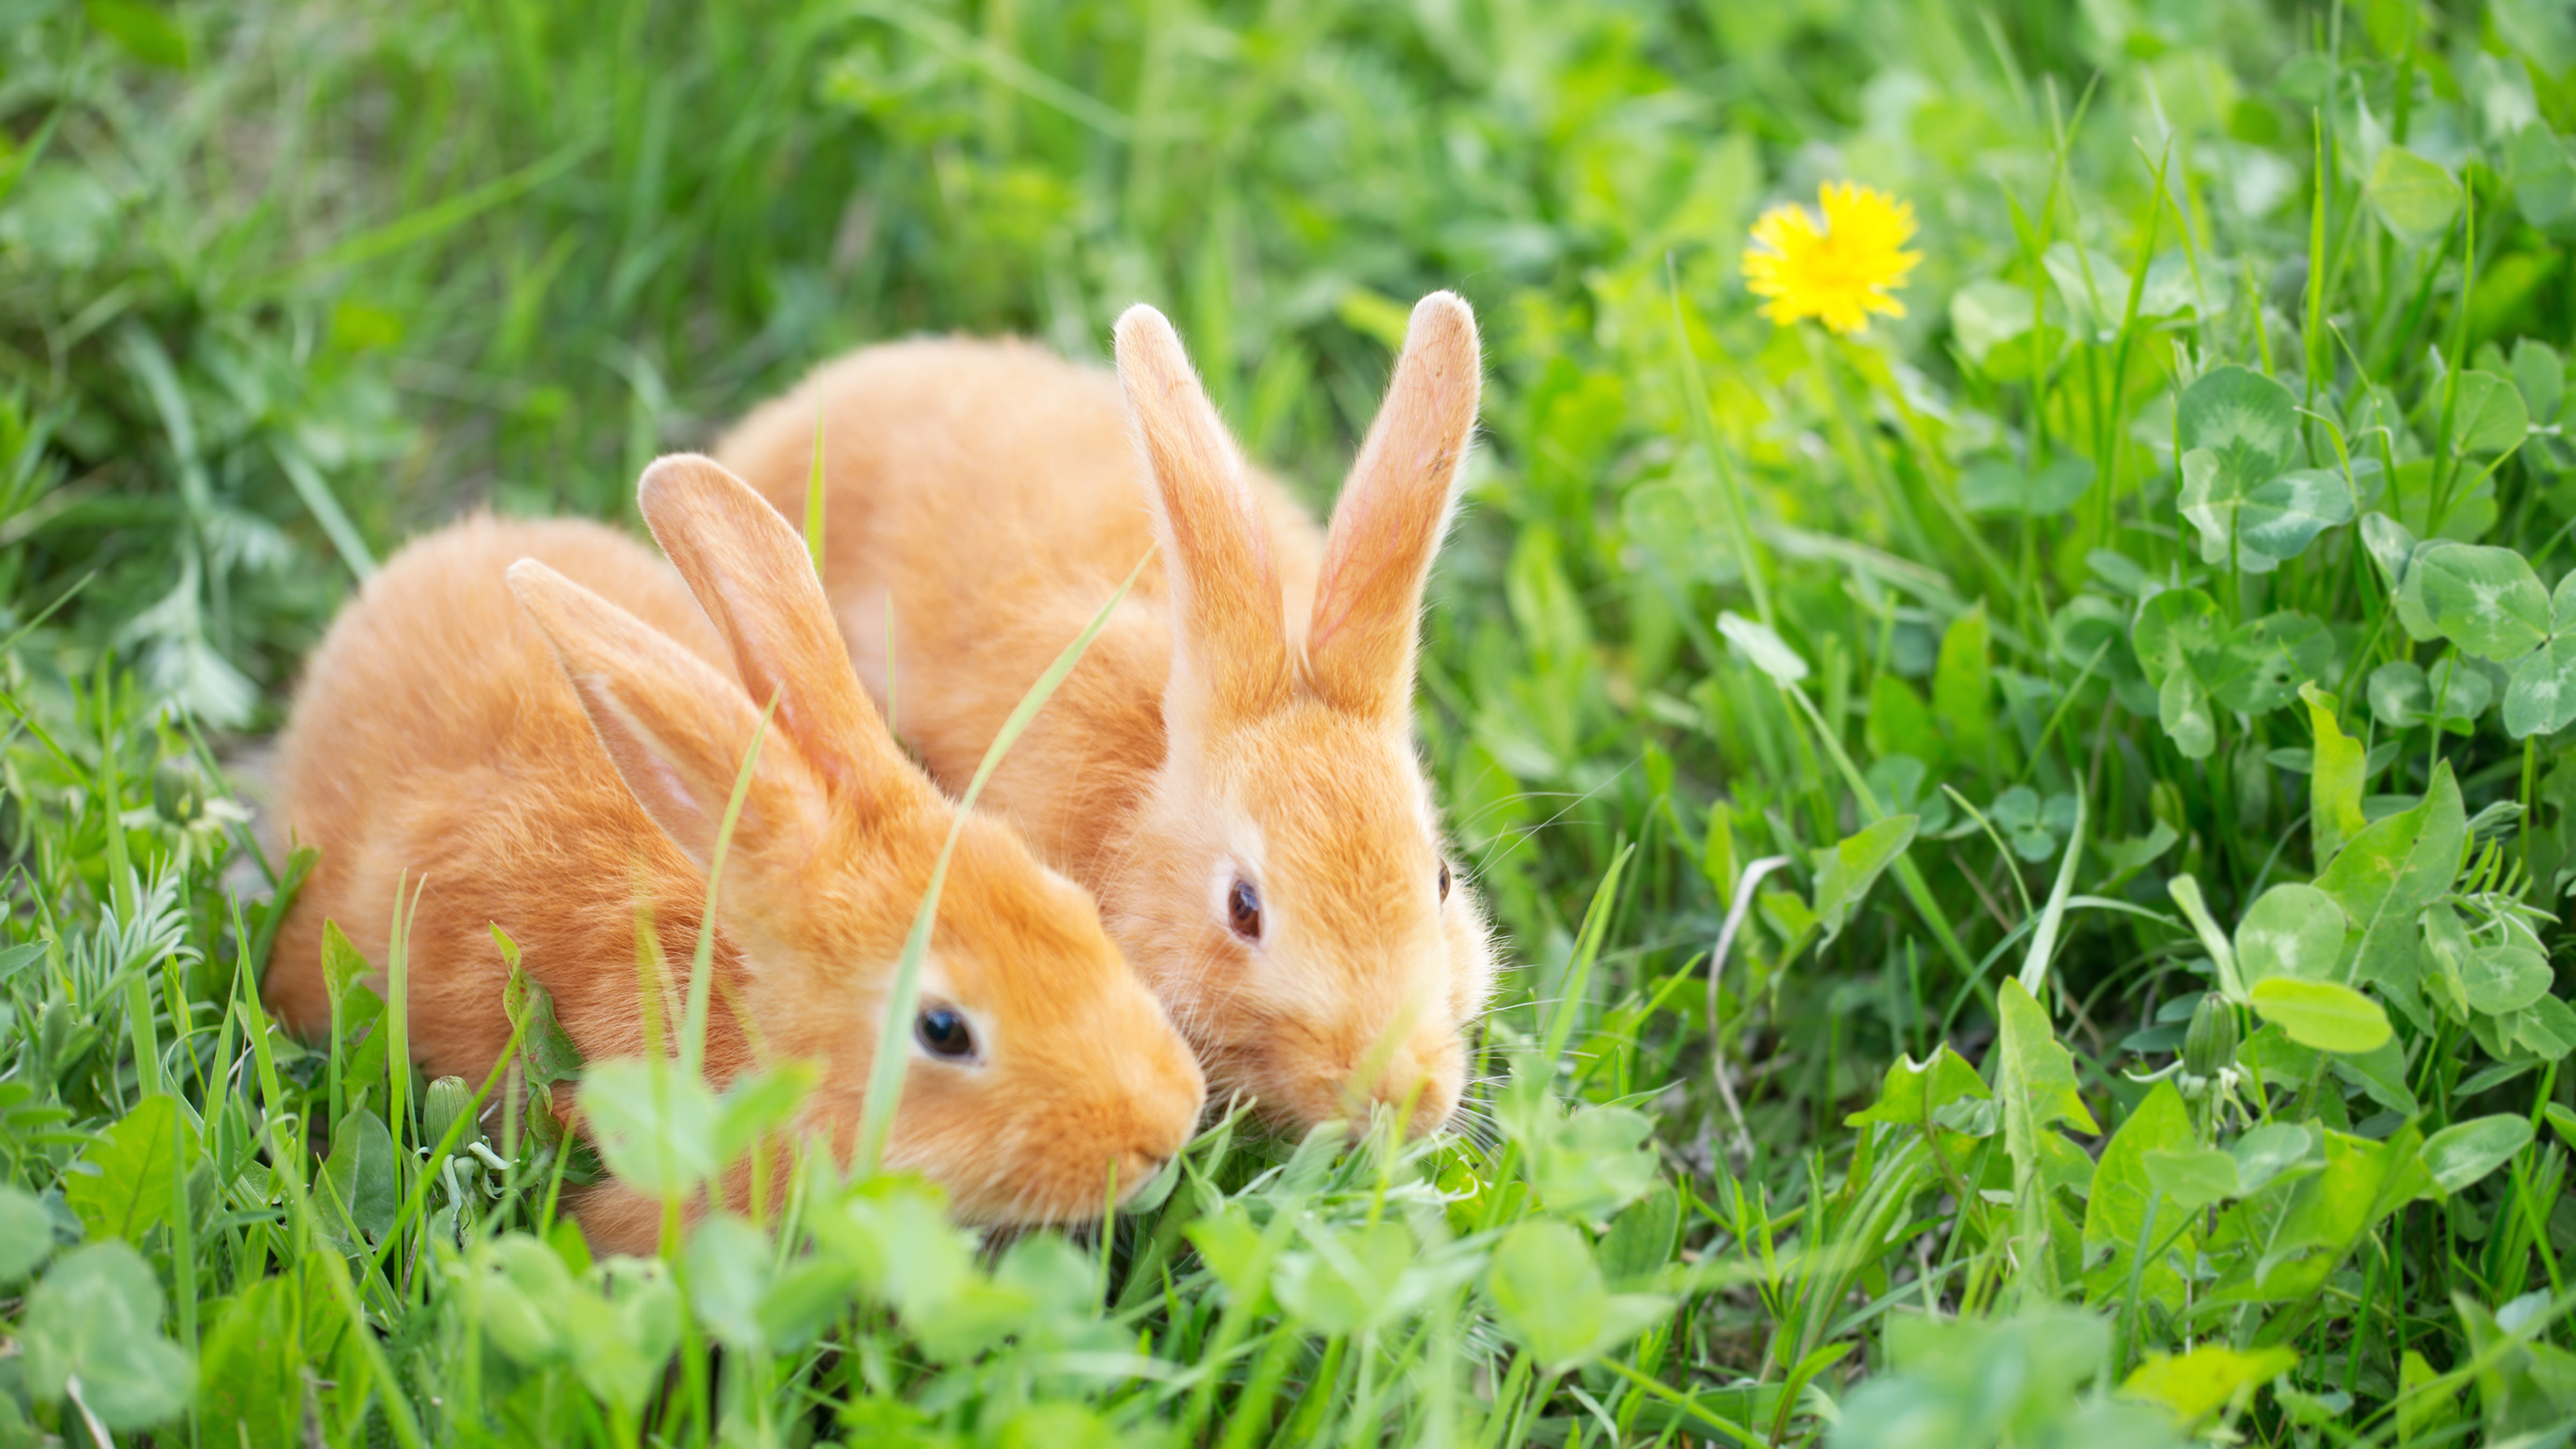 Worms and Your Rabbit